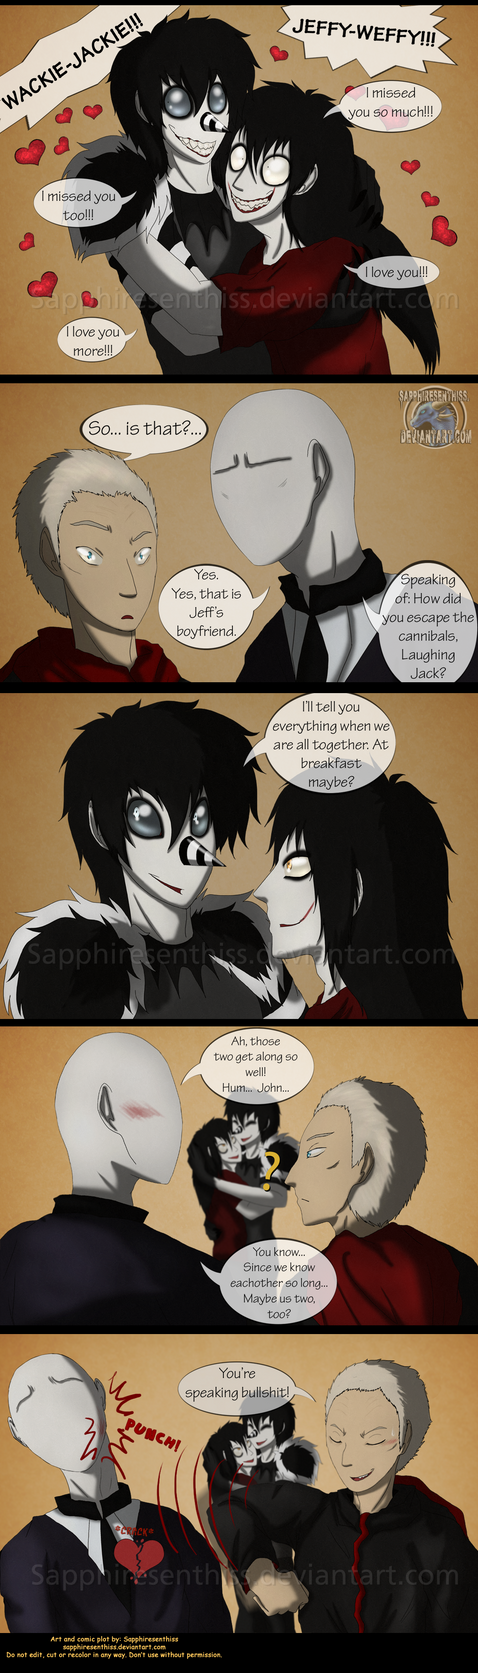 Adventures With Jeff The Killer - PAGE 162 by ...